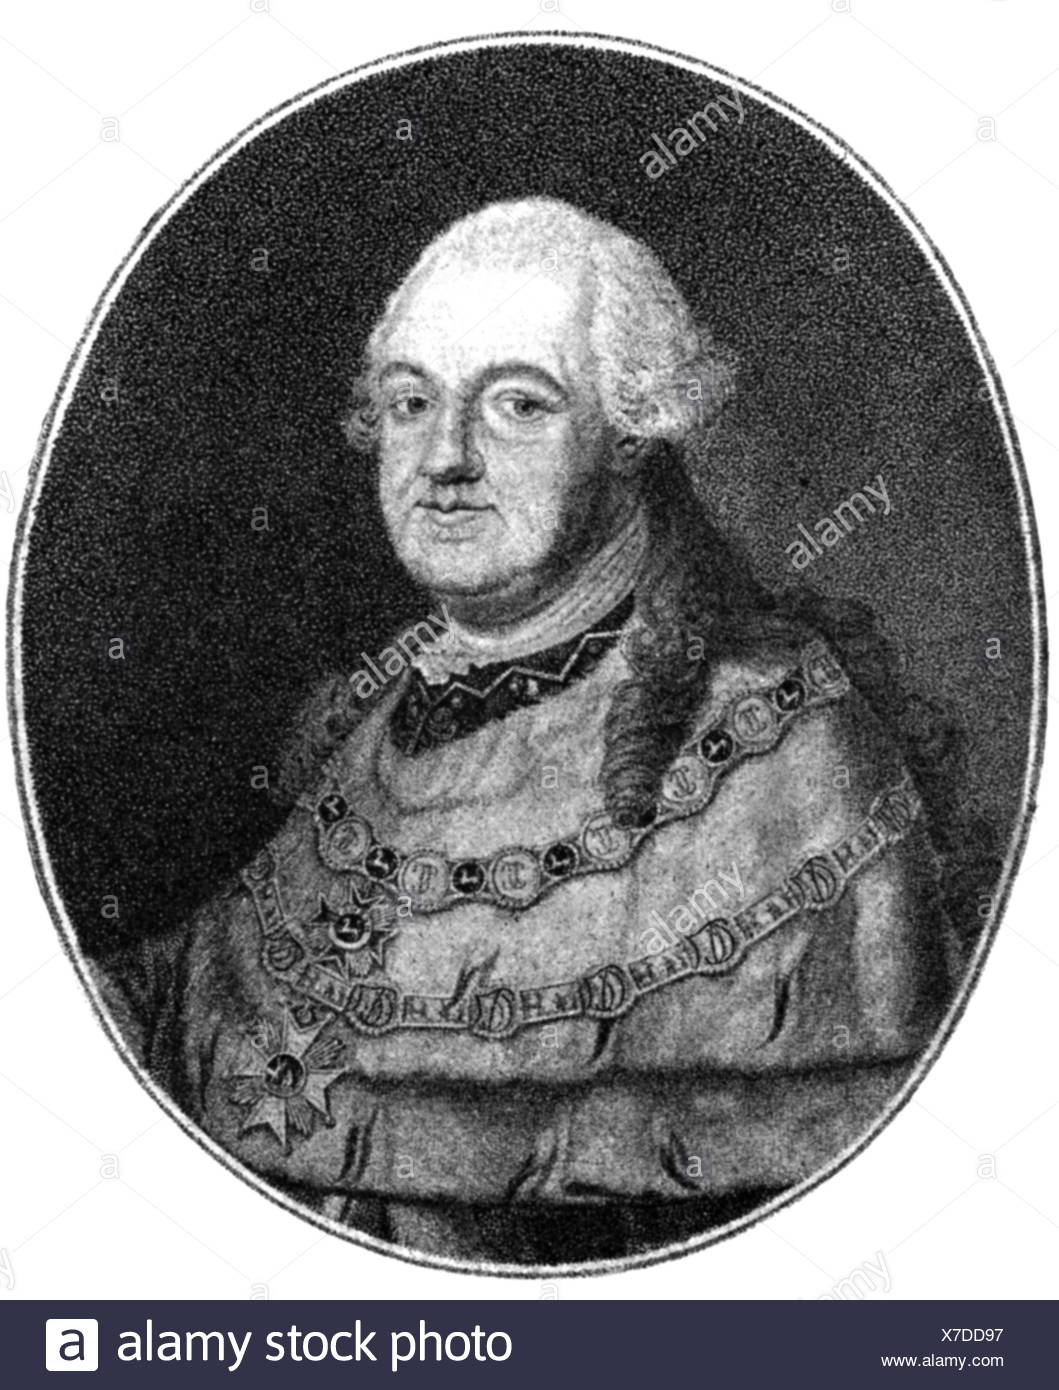 Charles Theodore, 11.12.1724 - 16.2.1799, Prince Elector of Bavaria 30.12.1777 - 16.2.1799, portrait, copper engraving by F. John, 18th century, , Artist's Copyright has not to be cleared - Stock Image